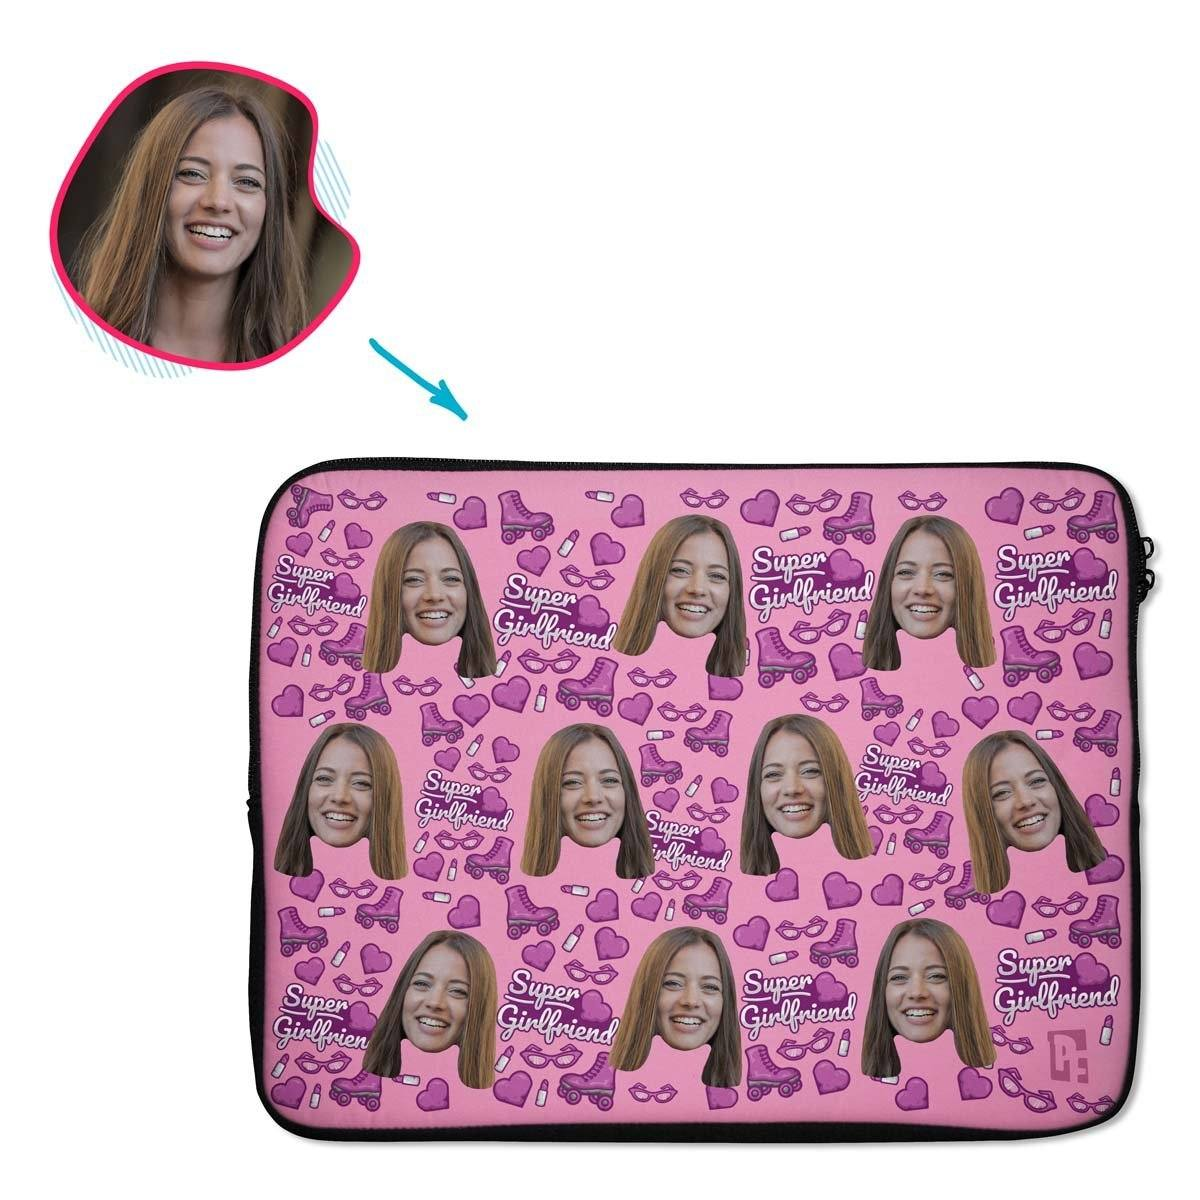 Pink Girlfriend personalized socks with photo of face printed on them